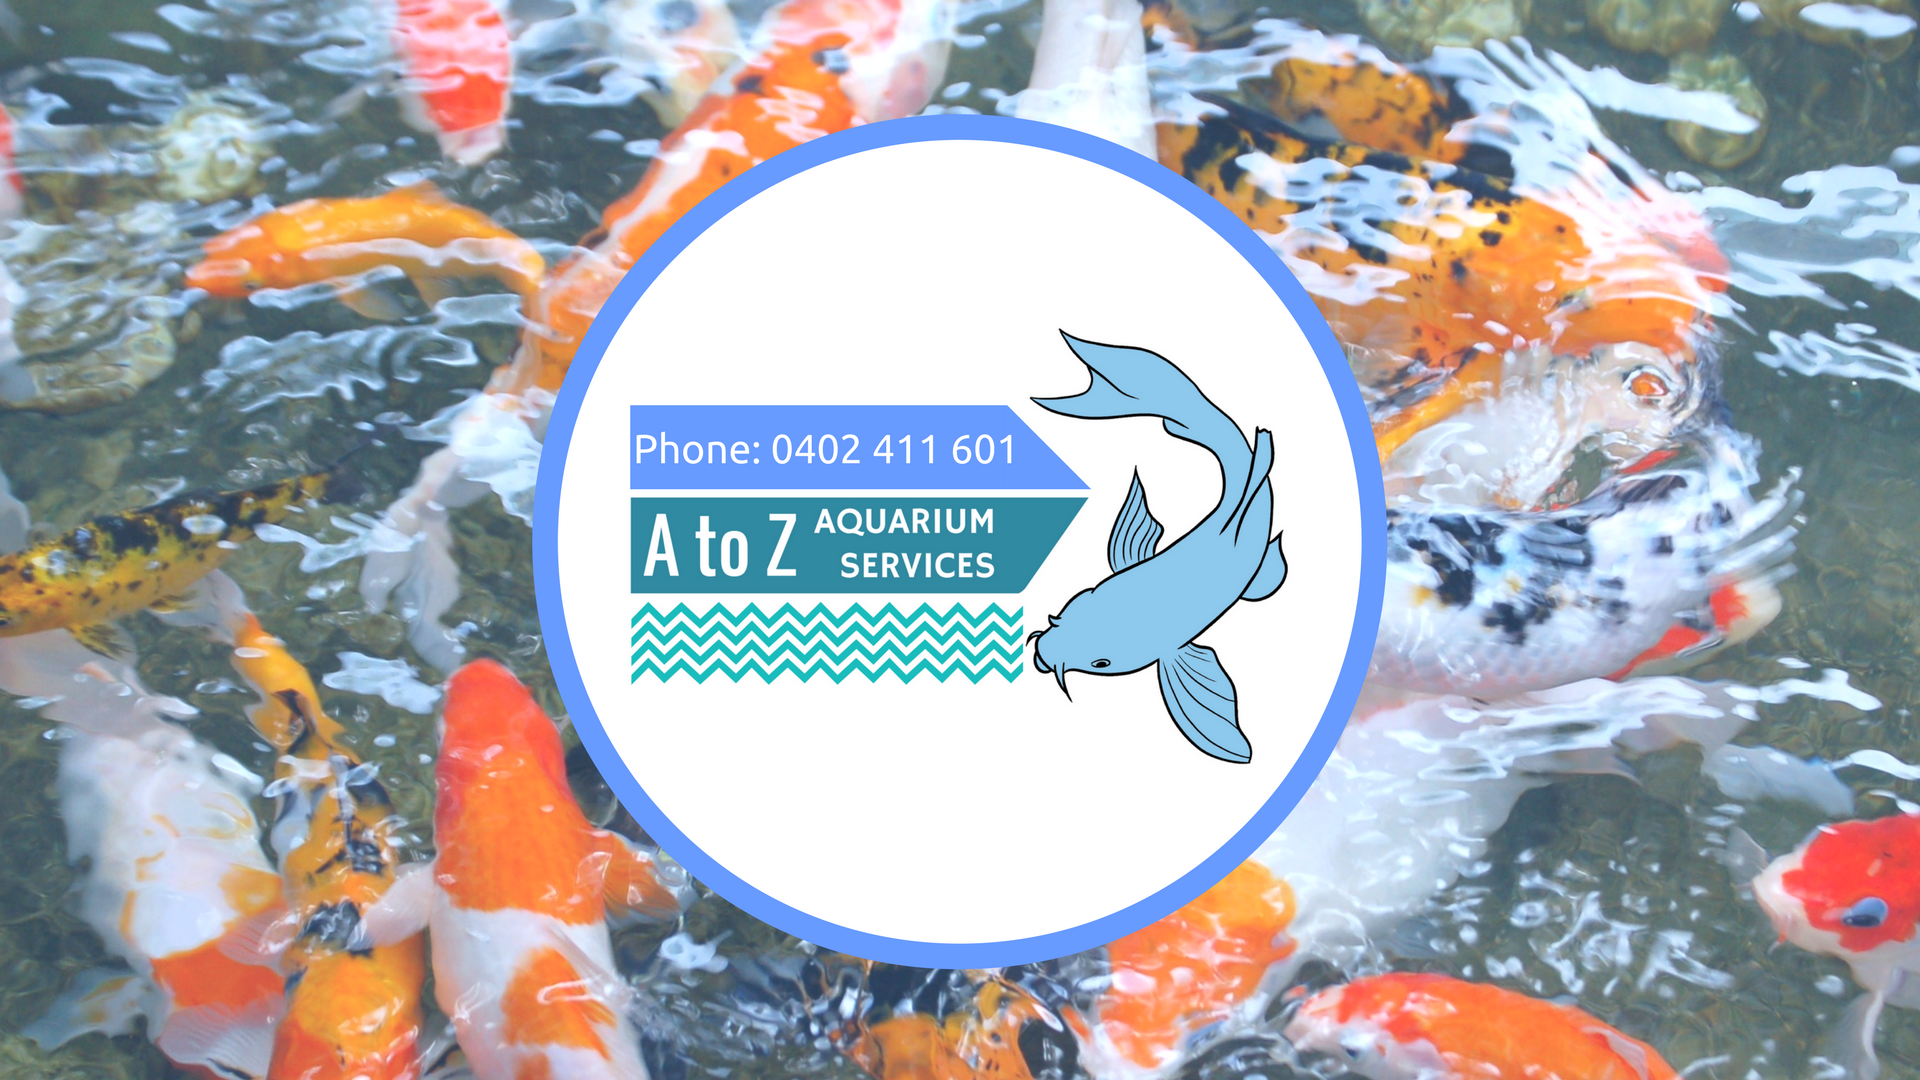 A to Z Aquarium Services